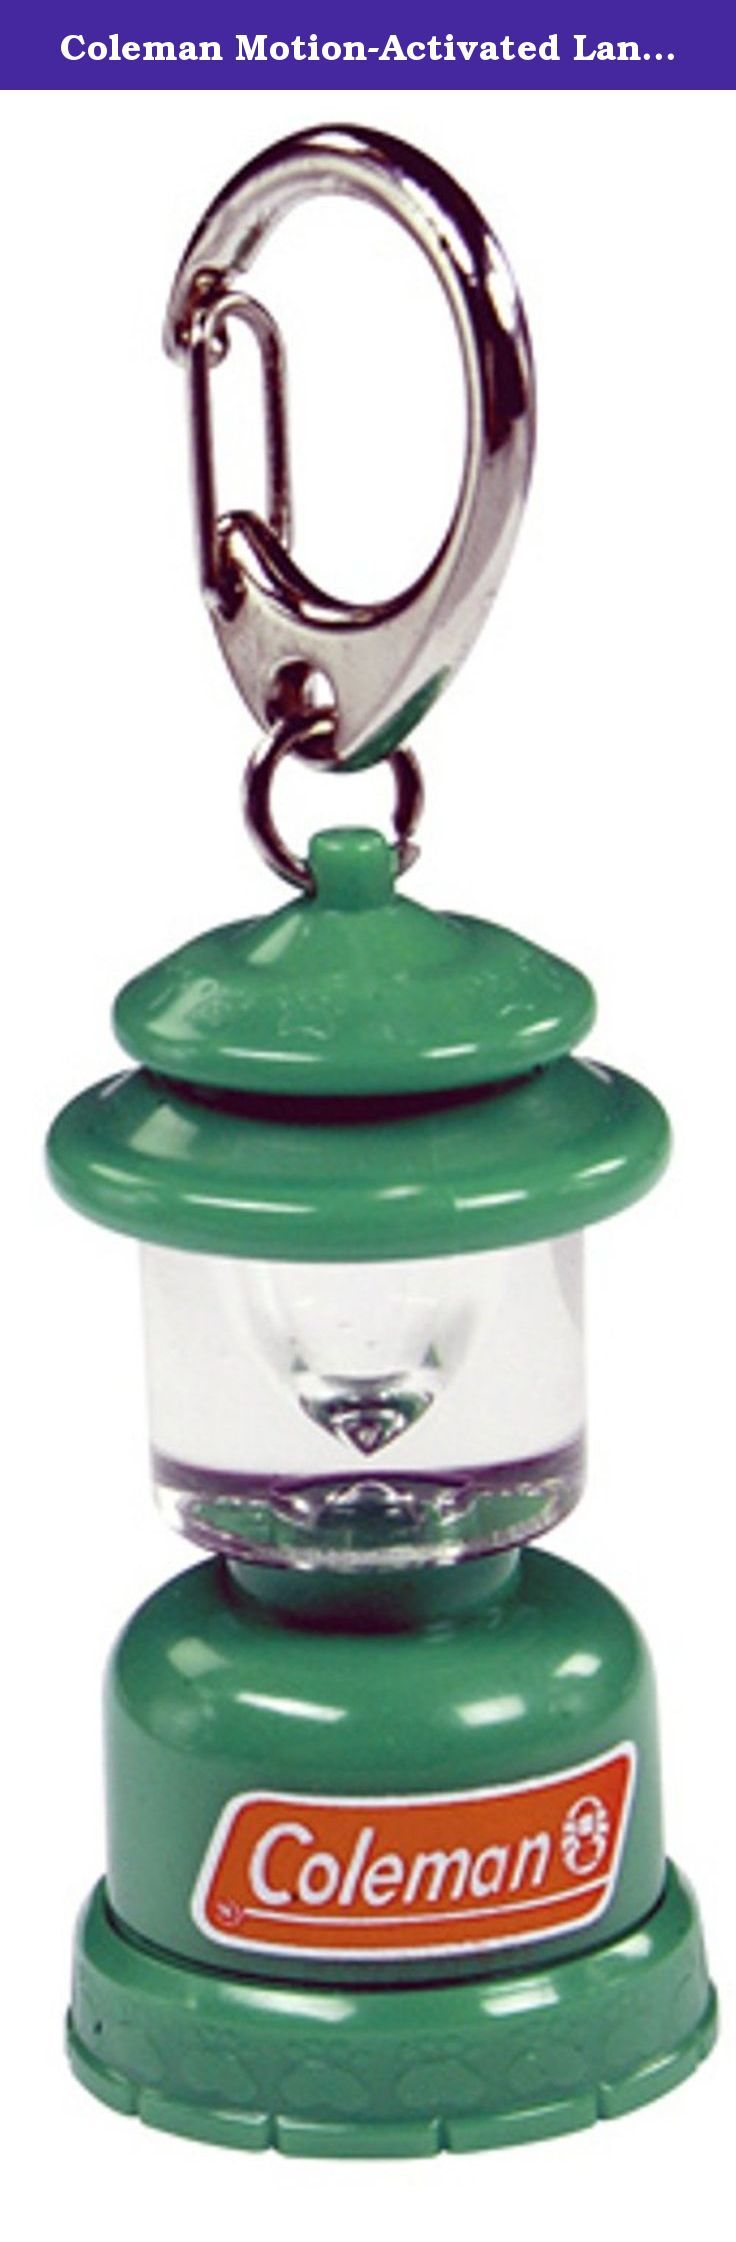 Coleman Motion-Activated Lantern Pet Tag. Light your pet's way and make them easy to find in the dark, with the Coleman Motion-Activated Lantern Pet Tag. The miniature classic Coleman Lantern contains a super-bright red LED that lights up and flashes when your pet moves. It's water-resistant, so it can go wherever your pet goes, and is durably constructed to withstand all your pet's outdoor activity. Pet ID tag is included.